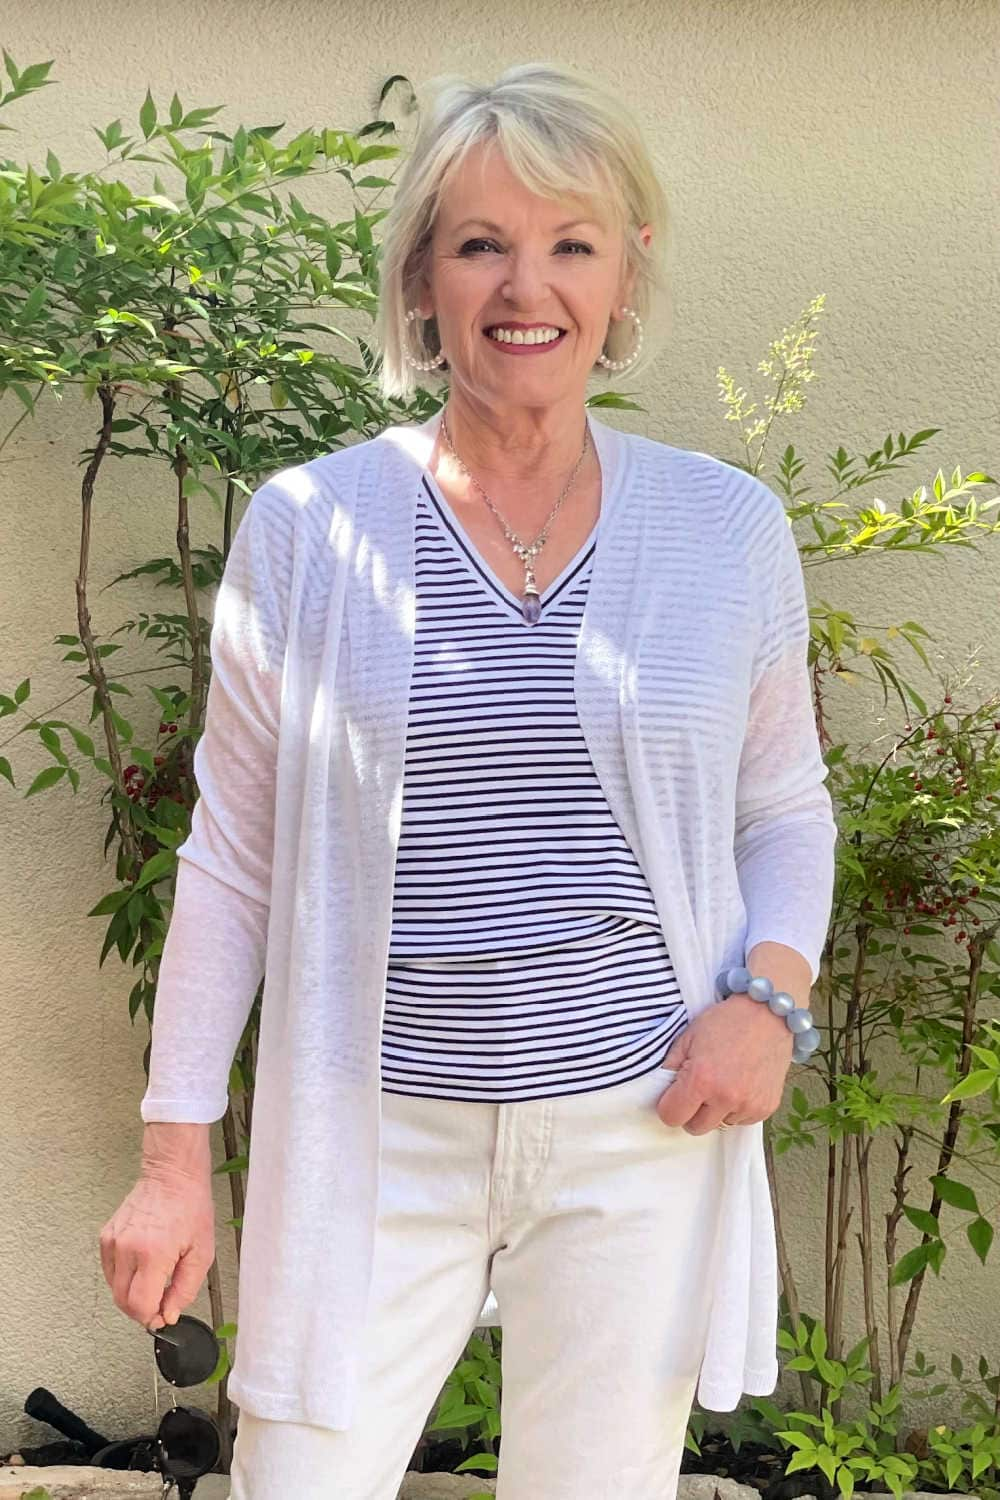 blonde woman wearing striped tee and white line sweater in courtyard garden